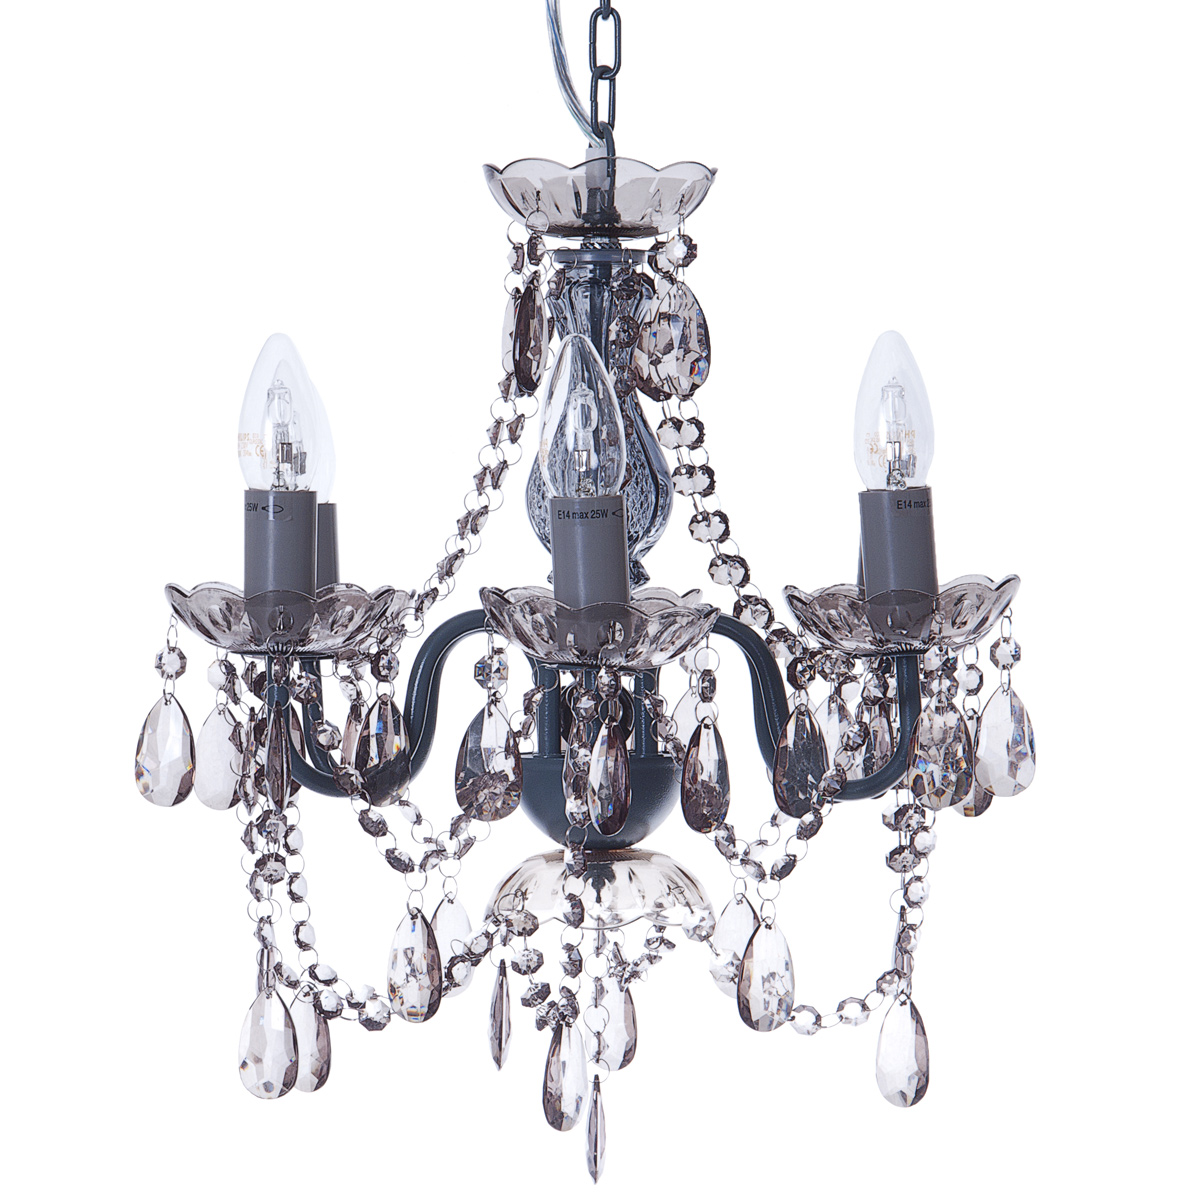 Fabulous Fifty Shades Chandelier 1200 x 1200 · 360 kB · jpeg